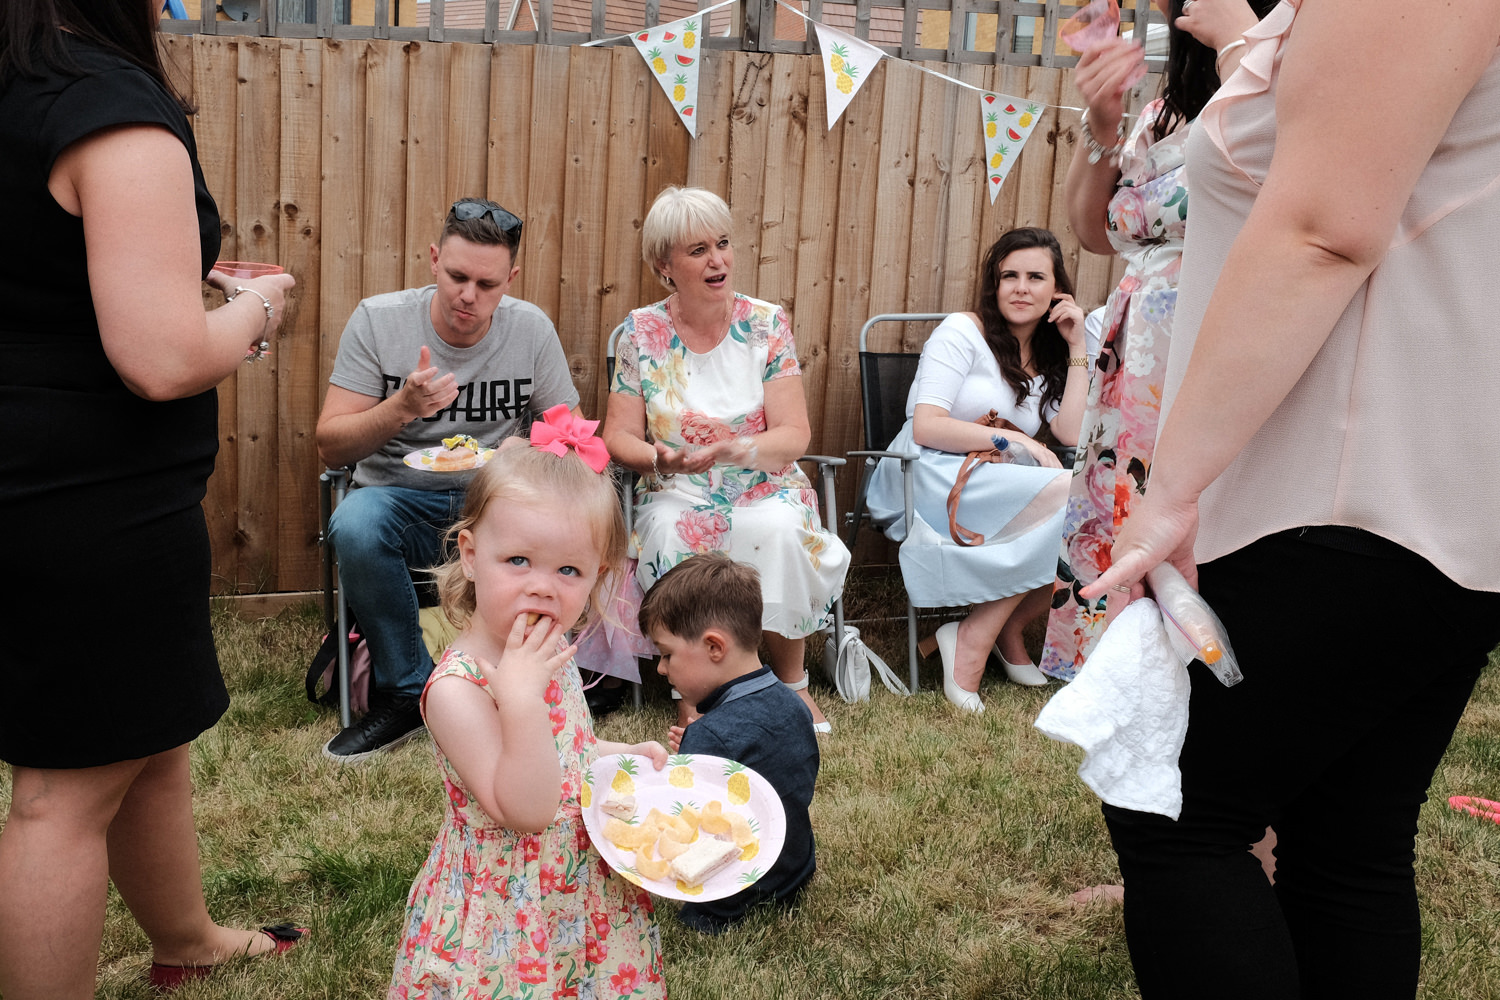 050-baptism-celebration-garden-buffet-picnic.jpg